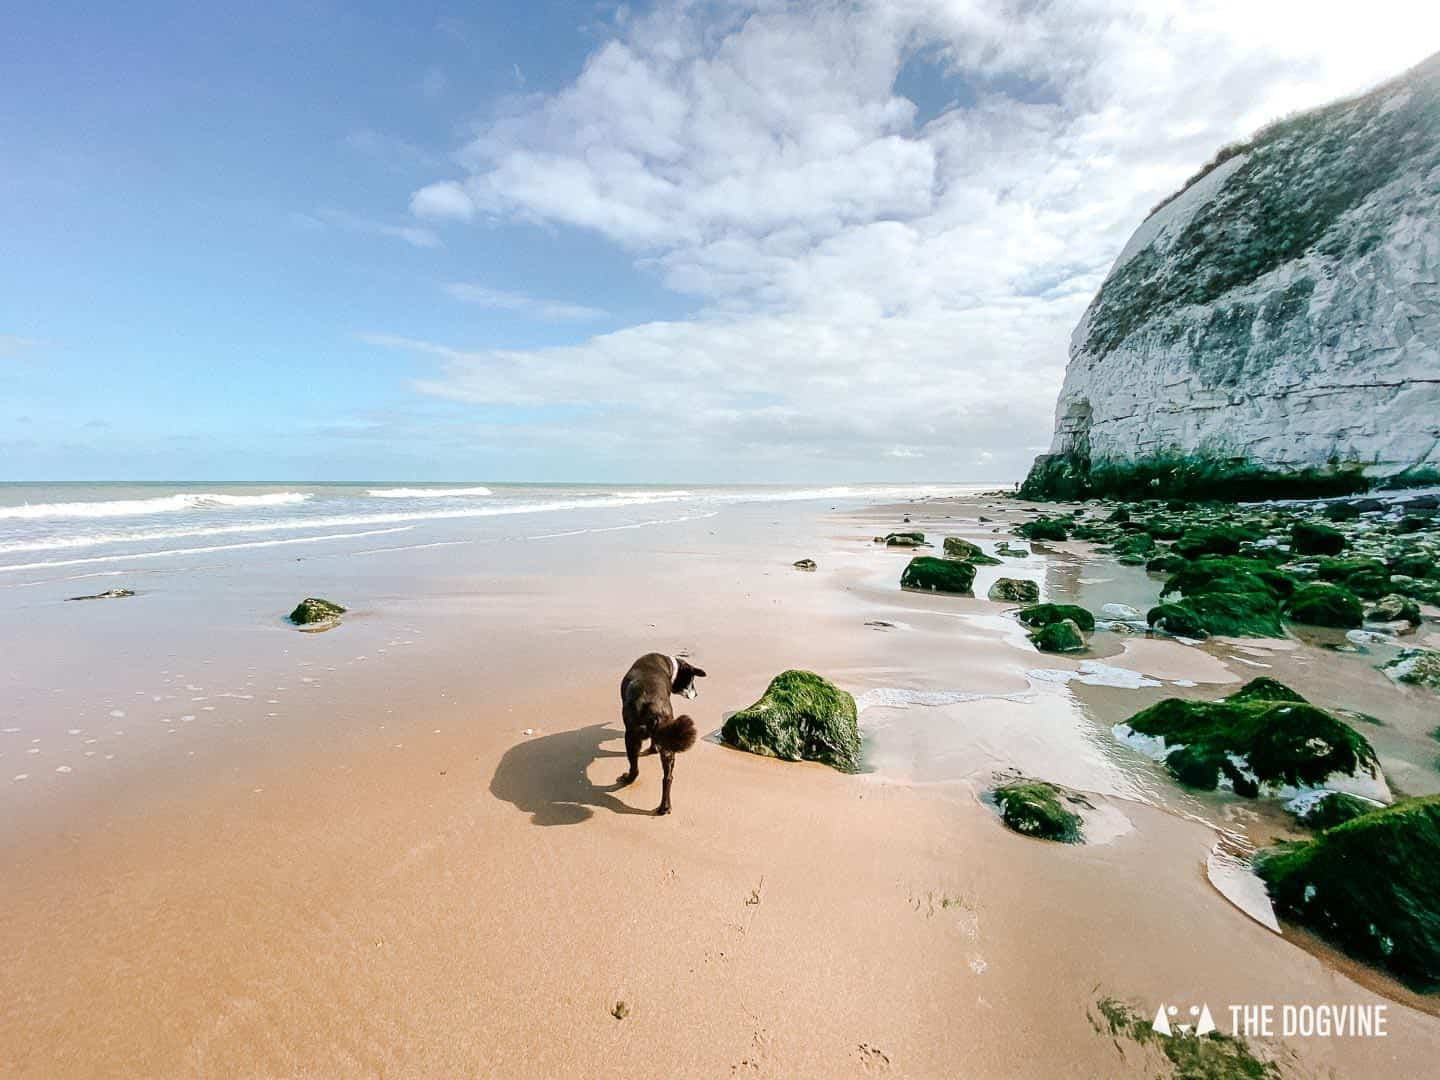 Dog walks on the beach at Dumpton Gap